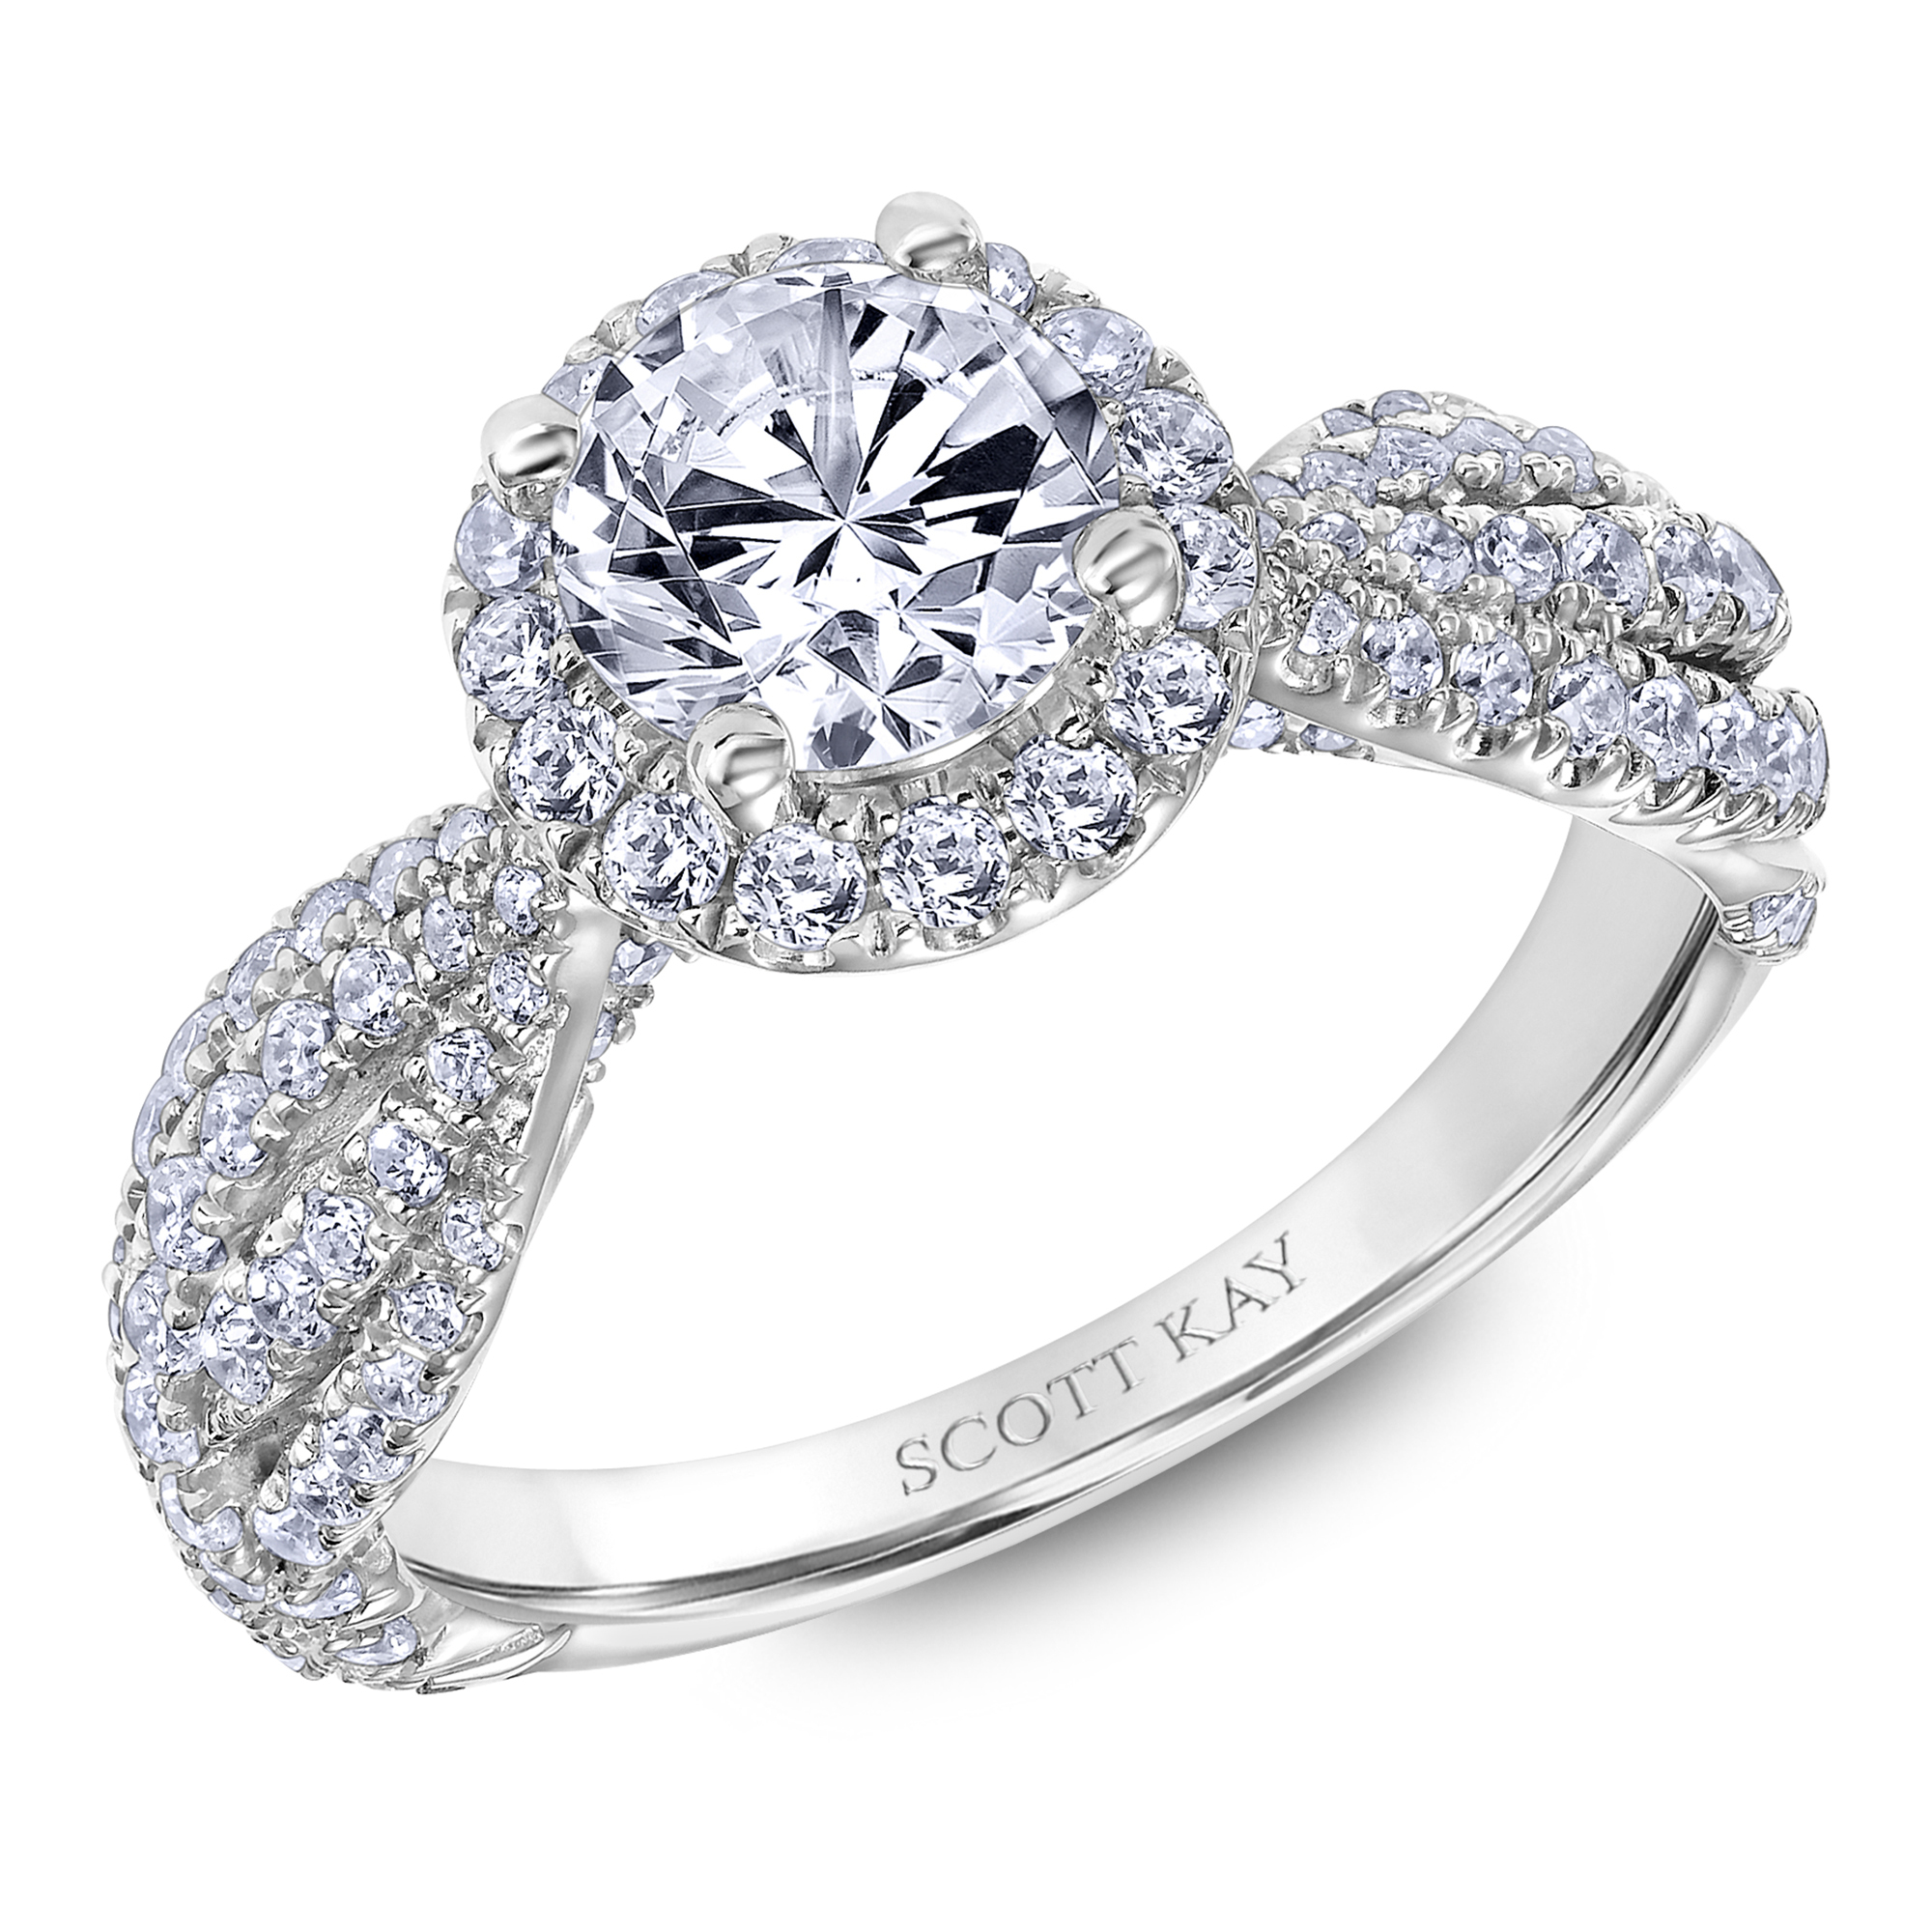 s koerber full destination fine bridal solid bottom crescent your rings tacori scott diamond kay ring engagement petite jewelry